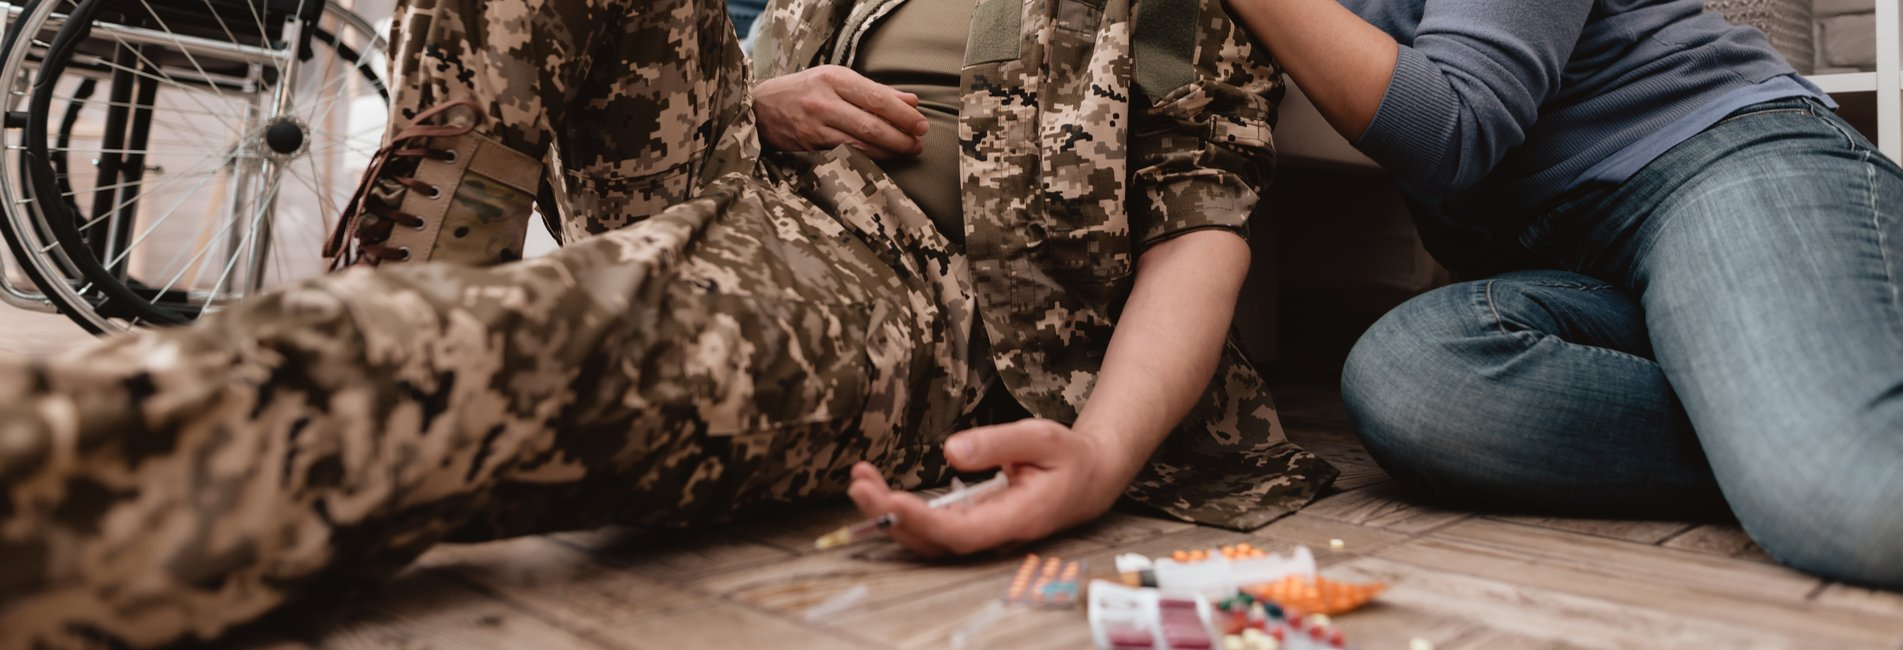 Addiction is it a Disease or a Choice Resurgence - Addiction can lead to grave consequences, like this veteran who has overdosed. That begs the question? Is addiction a disease or a choice? Either way, when you struggle with addiction you need to find help.